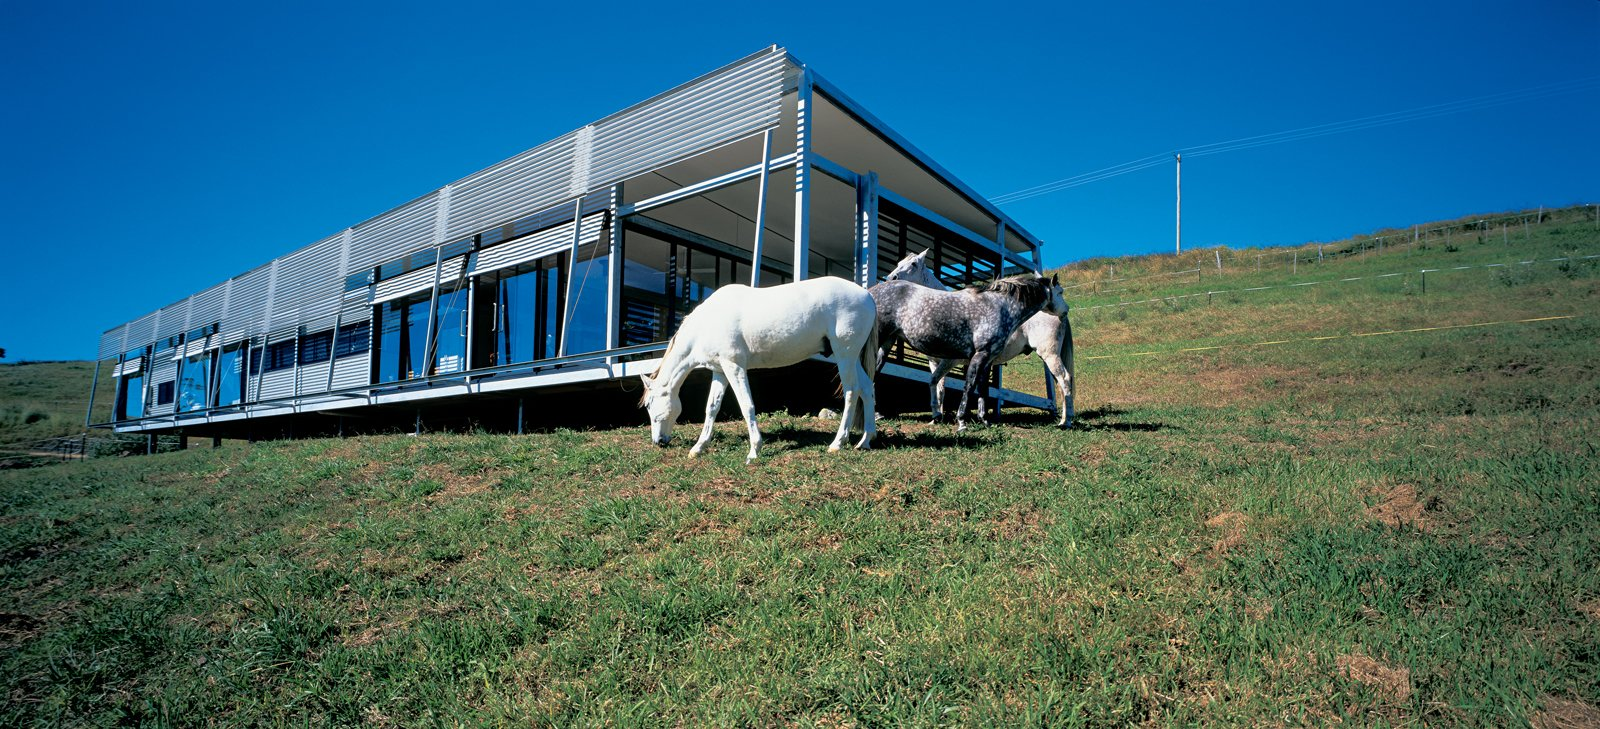 """""""There's a lot of horse talk here, and with this place there is plenty of opportunity for   interaction. My horses can play Mister Ed and join right in,"""" says Kropach. Her inquisitive Andalusian steeds regularly socialize with guests via sliding windows along the house's main north-facing elevation."""